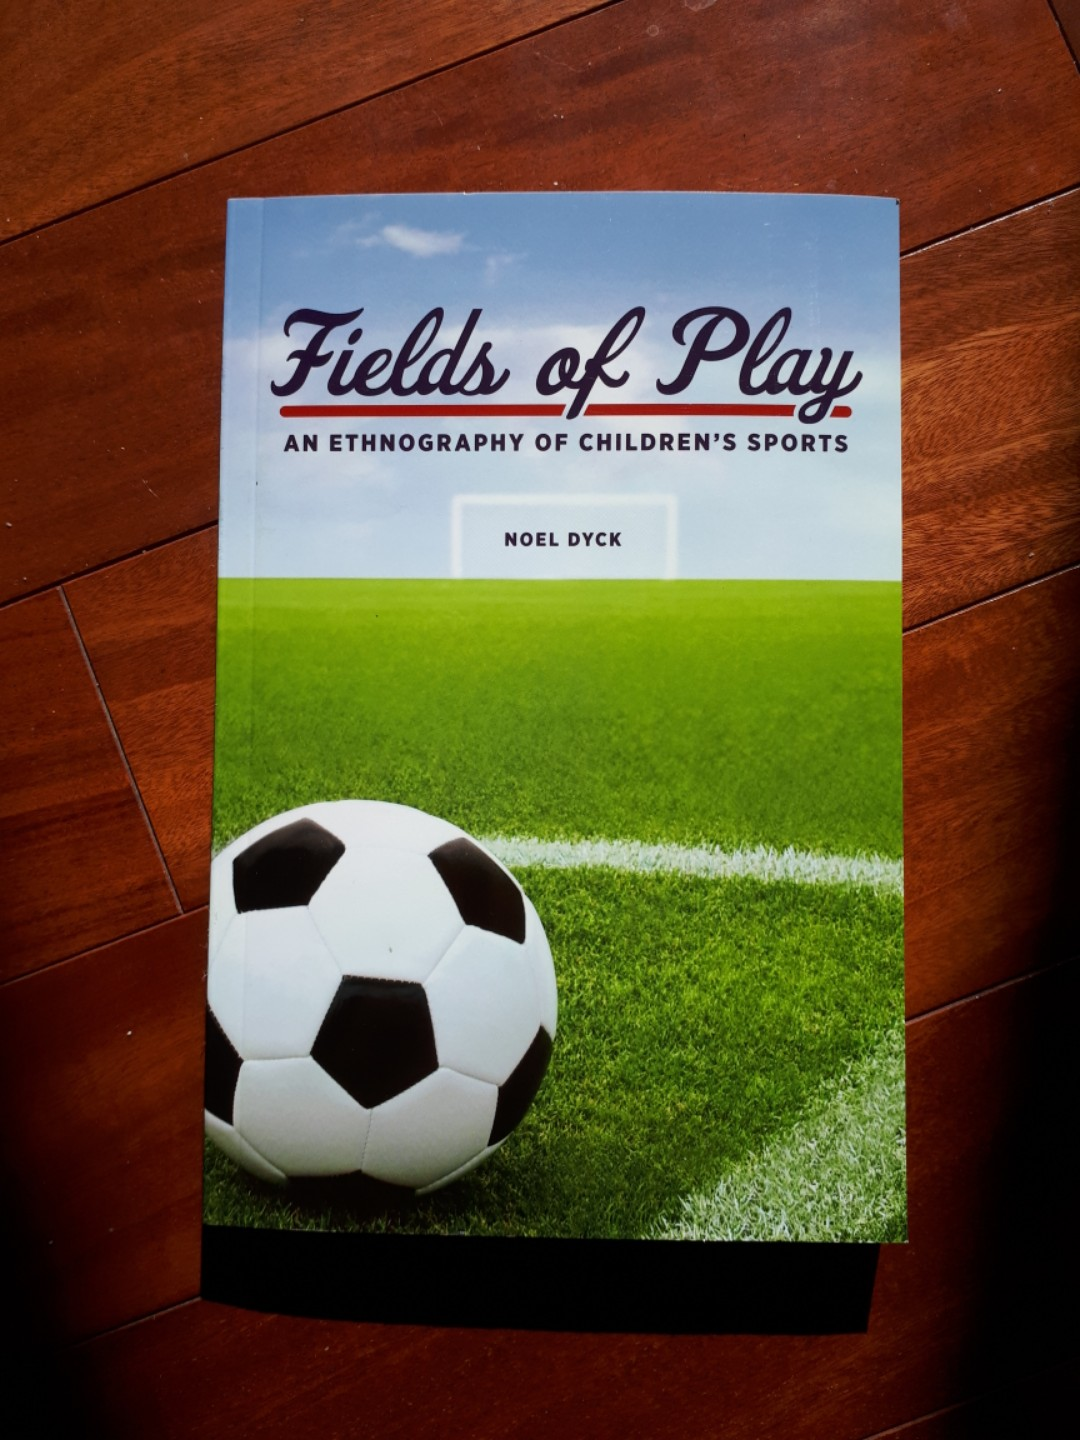 Fields of Play - An Ethnography of Children's Sports